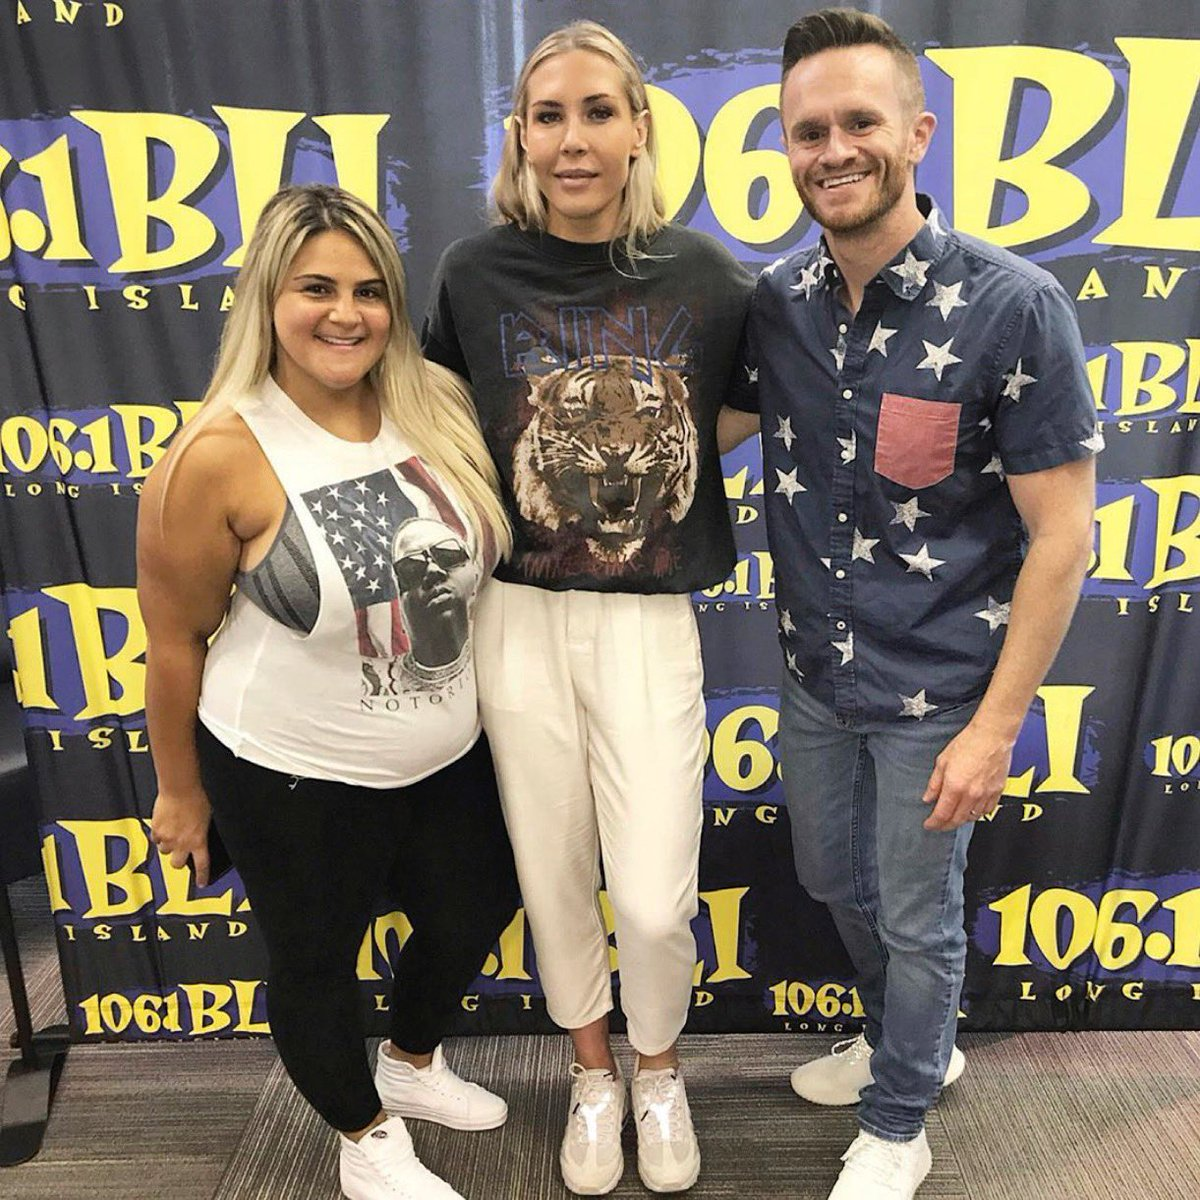 7 am @1061BLI we talk all things @USWNT including twerking, potential diamond companies for a new diamond ring and of course Equal Pay. 🇺🇸❤️ Thanks for having me @MJonAir @SykeOnAir @Epic_Records